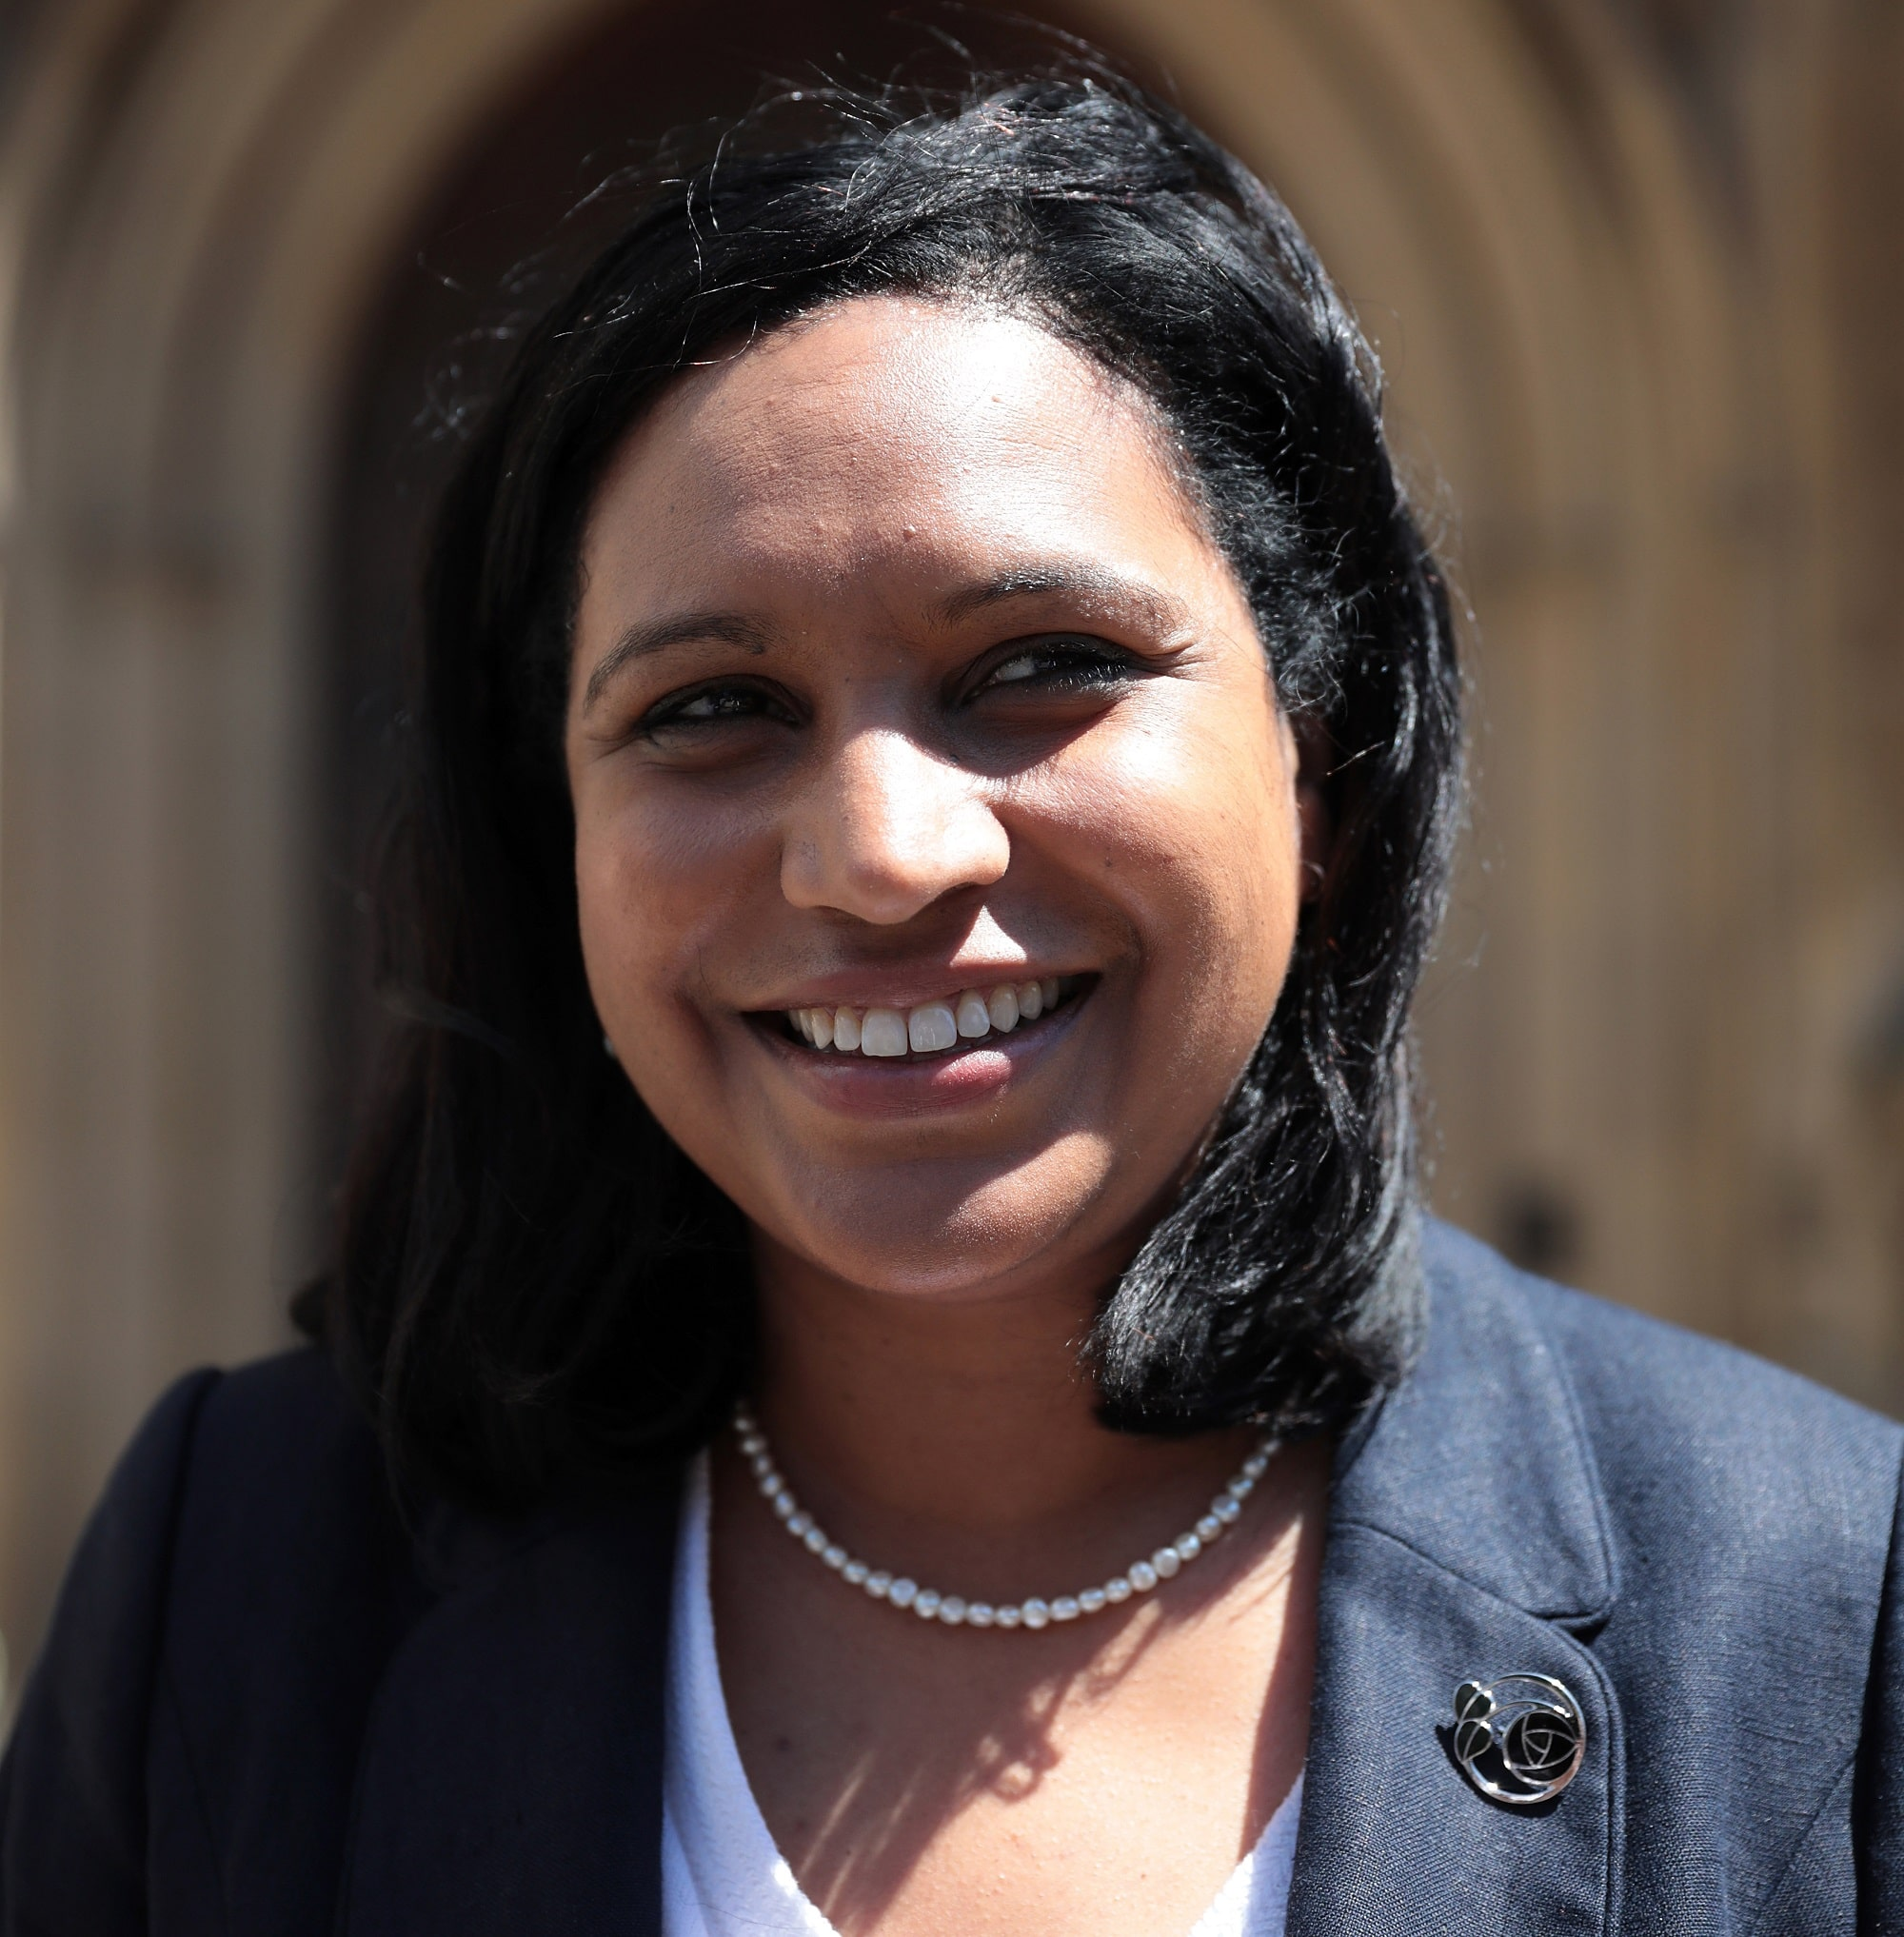 Labour shadow minister Janet Daby has resigned from the party's frontbench